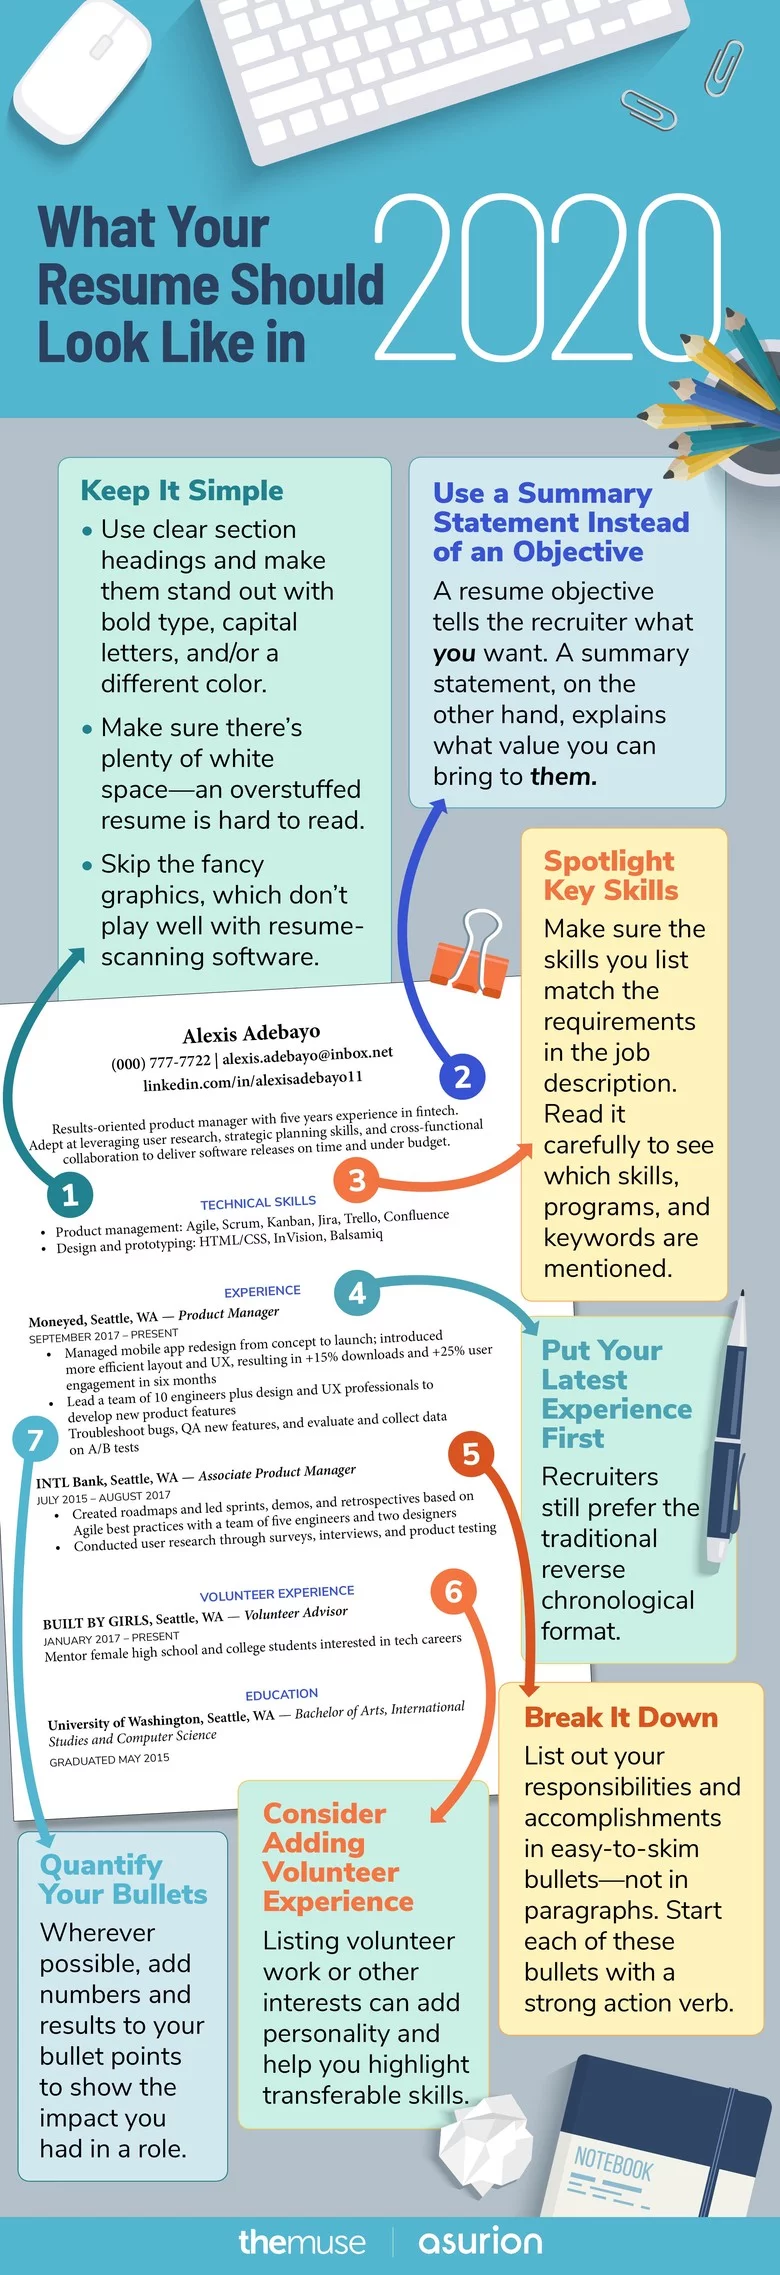 This Is What Your Resume Should Look Like In 2020 Resume Objective Resume Tips Resume Skills